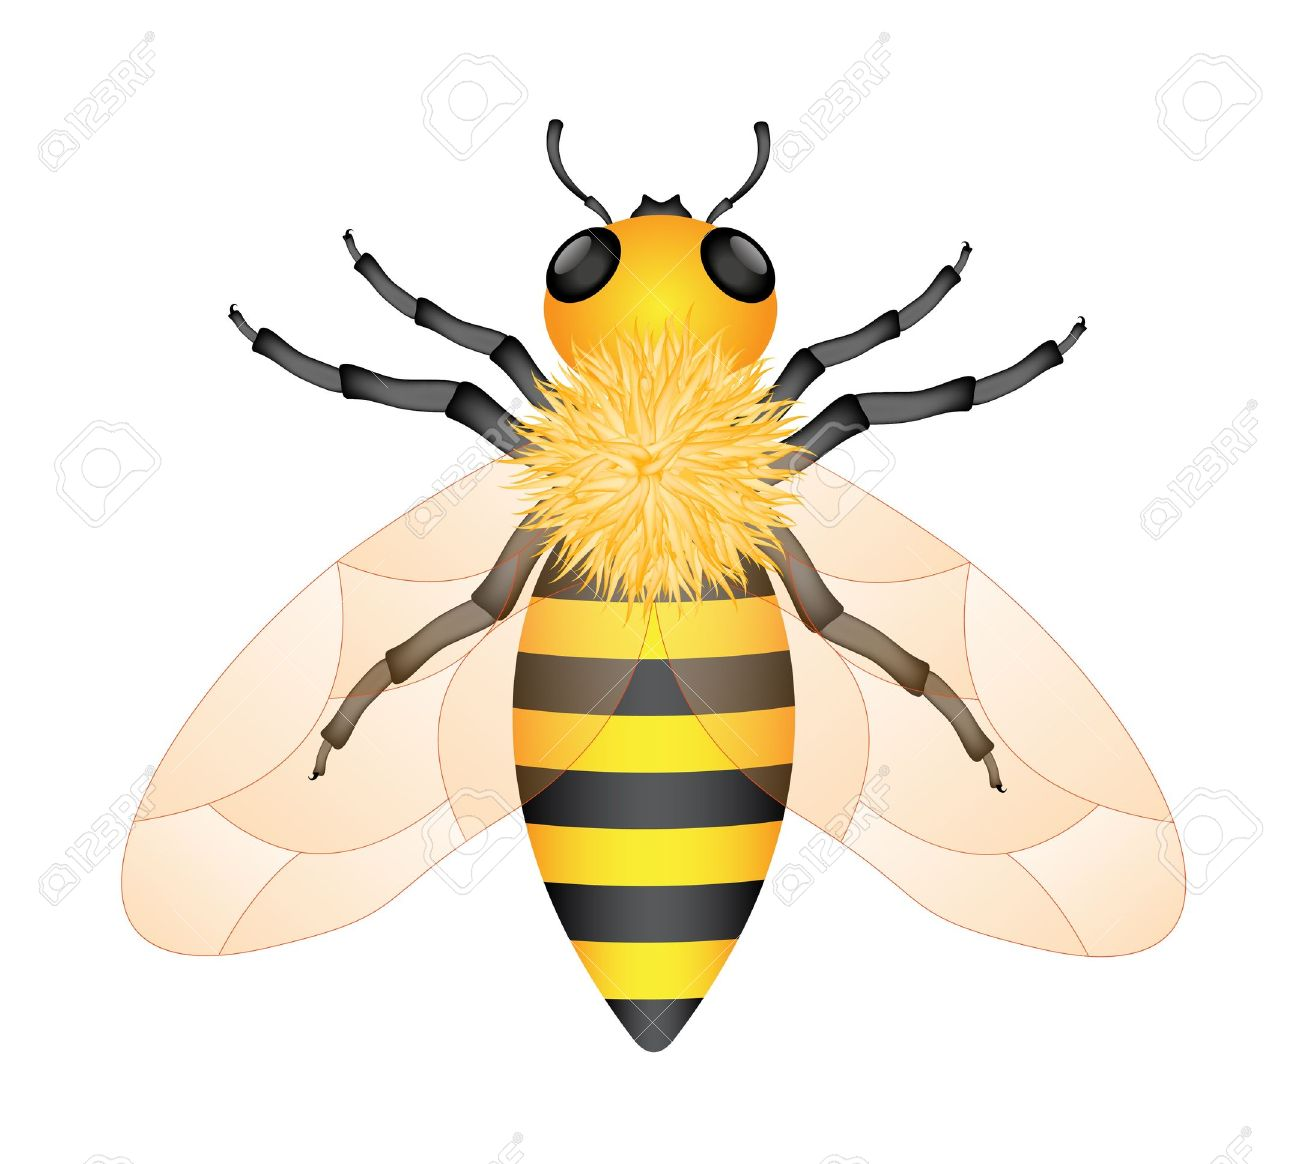 5 653 honeybee cliparts stock vector and royalty free honeybee rh 123rf com free honey bee clipart honey bee clip art 100% free